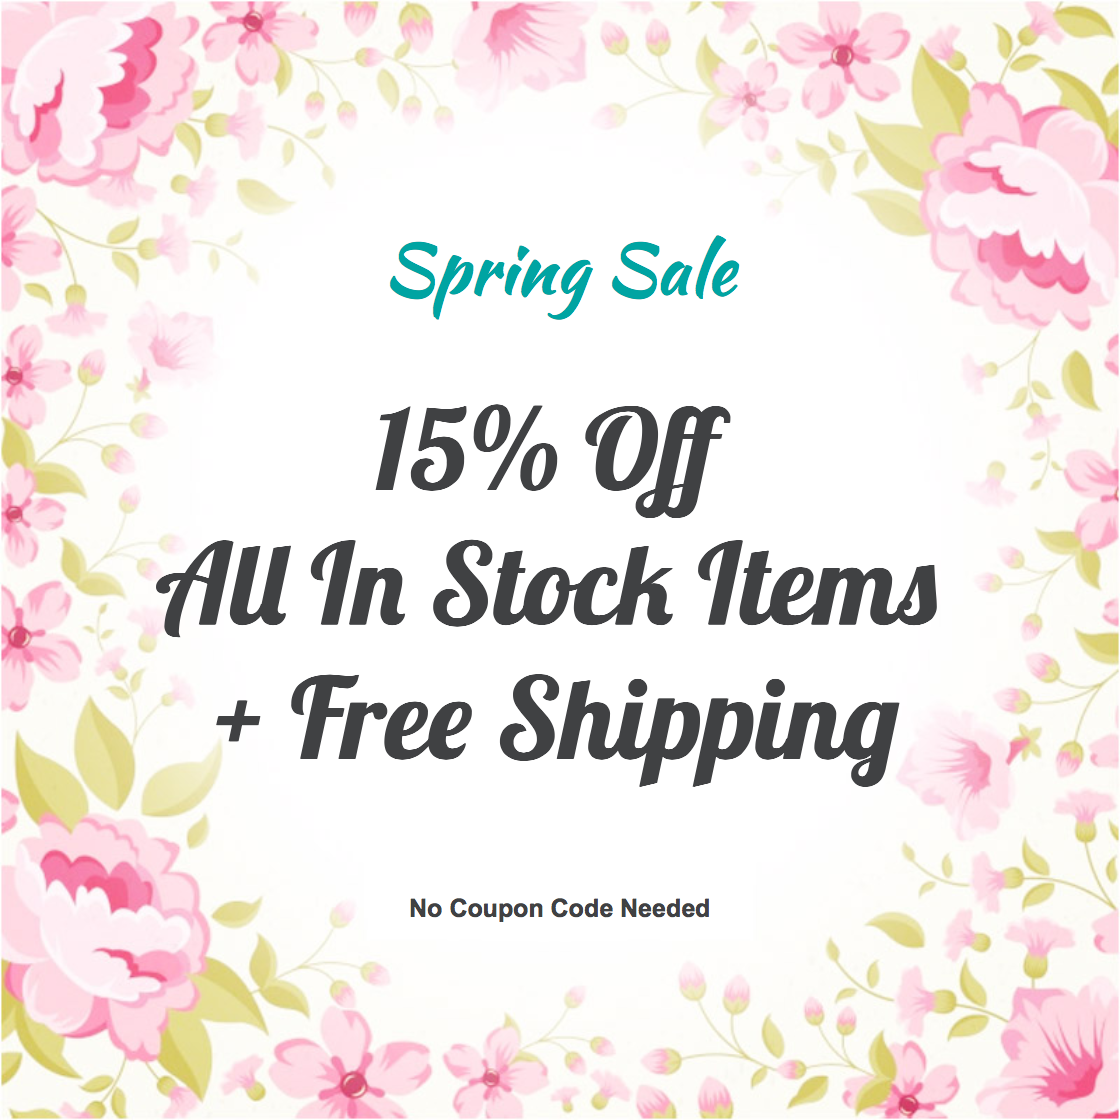 Come Join Us And Celebrate Spring With 15% Off All In